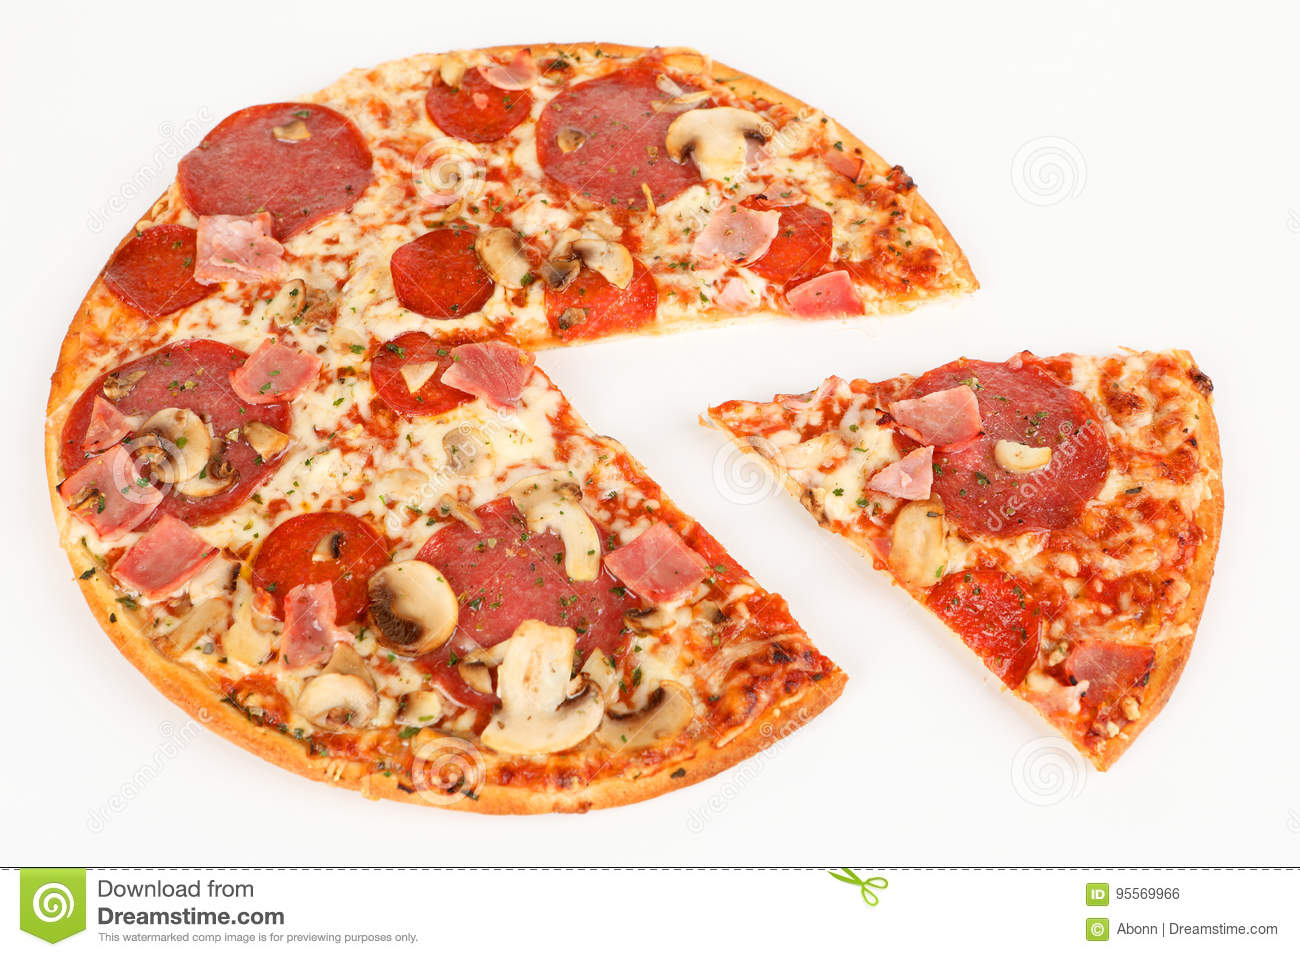 A pizza with ham and salami